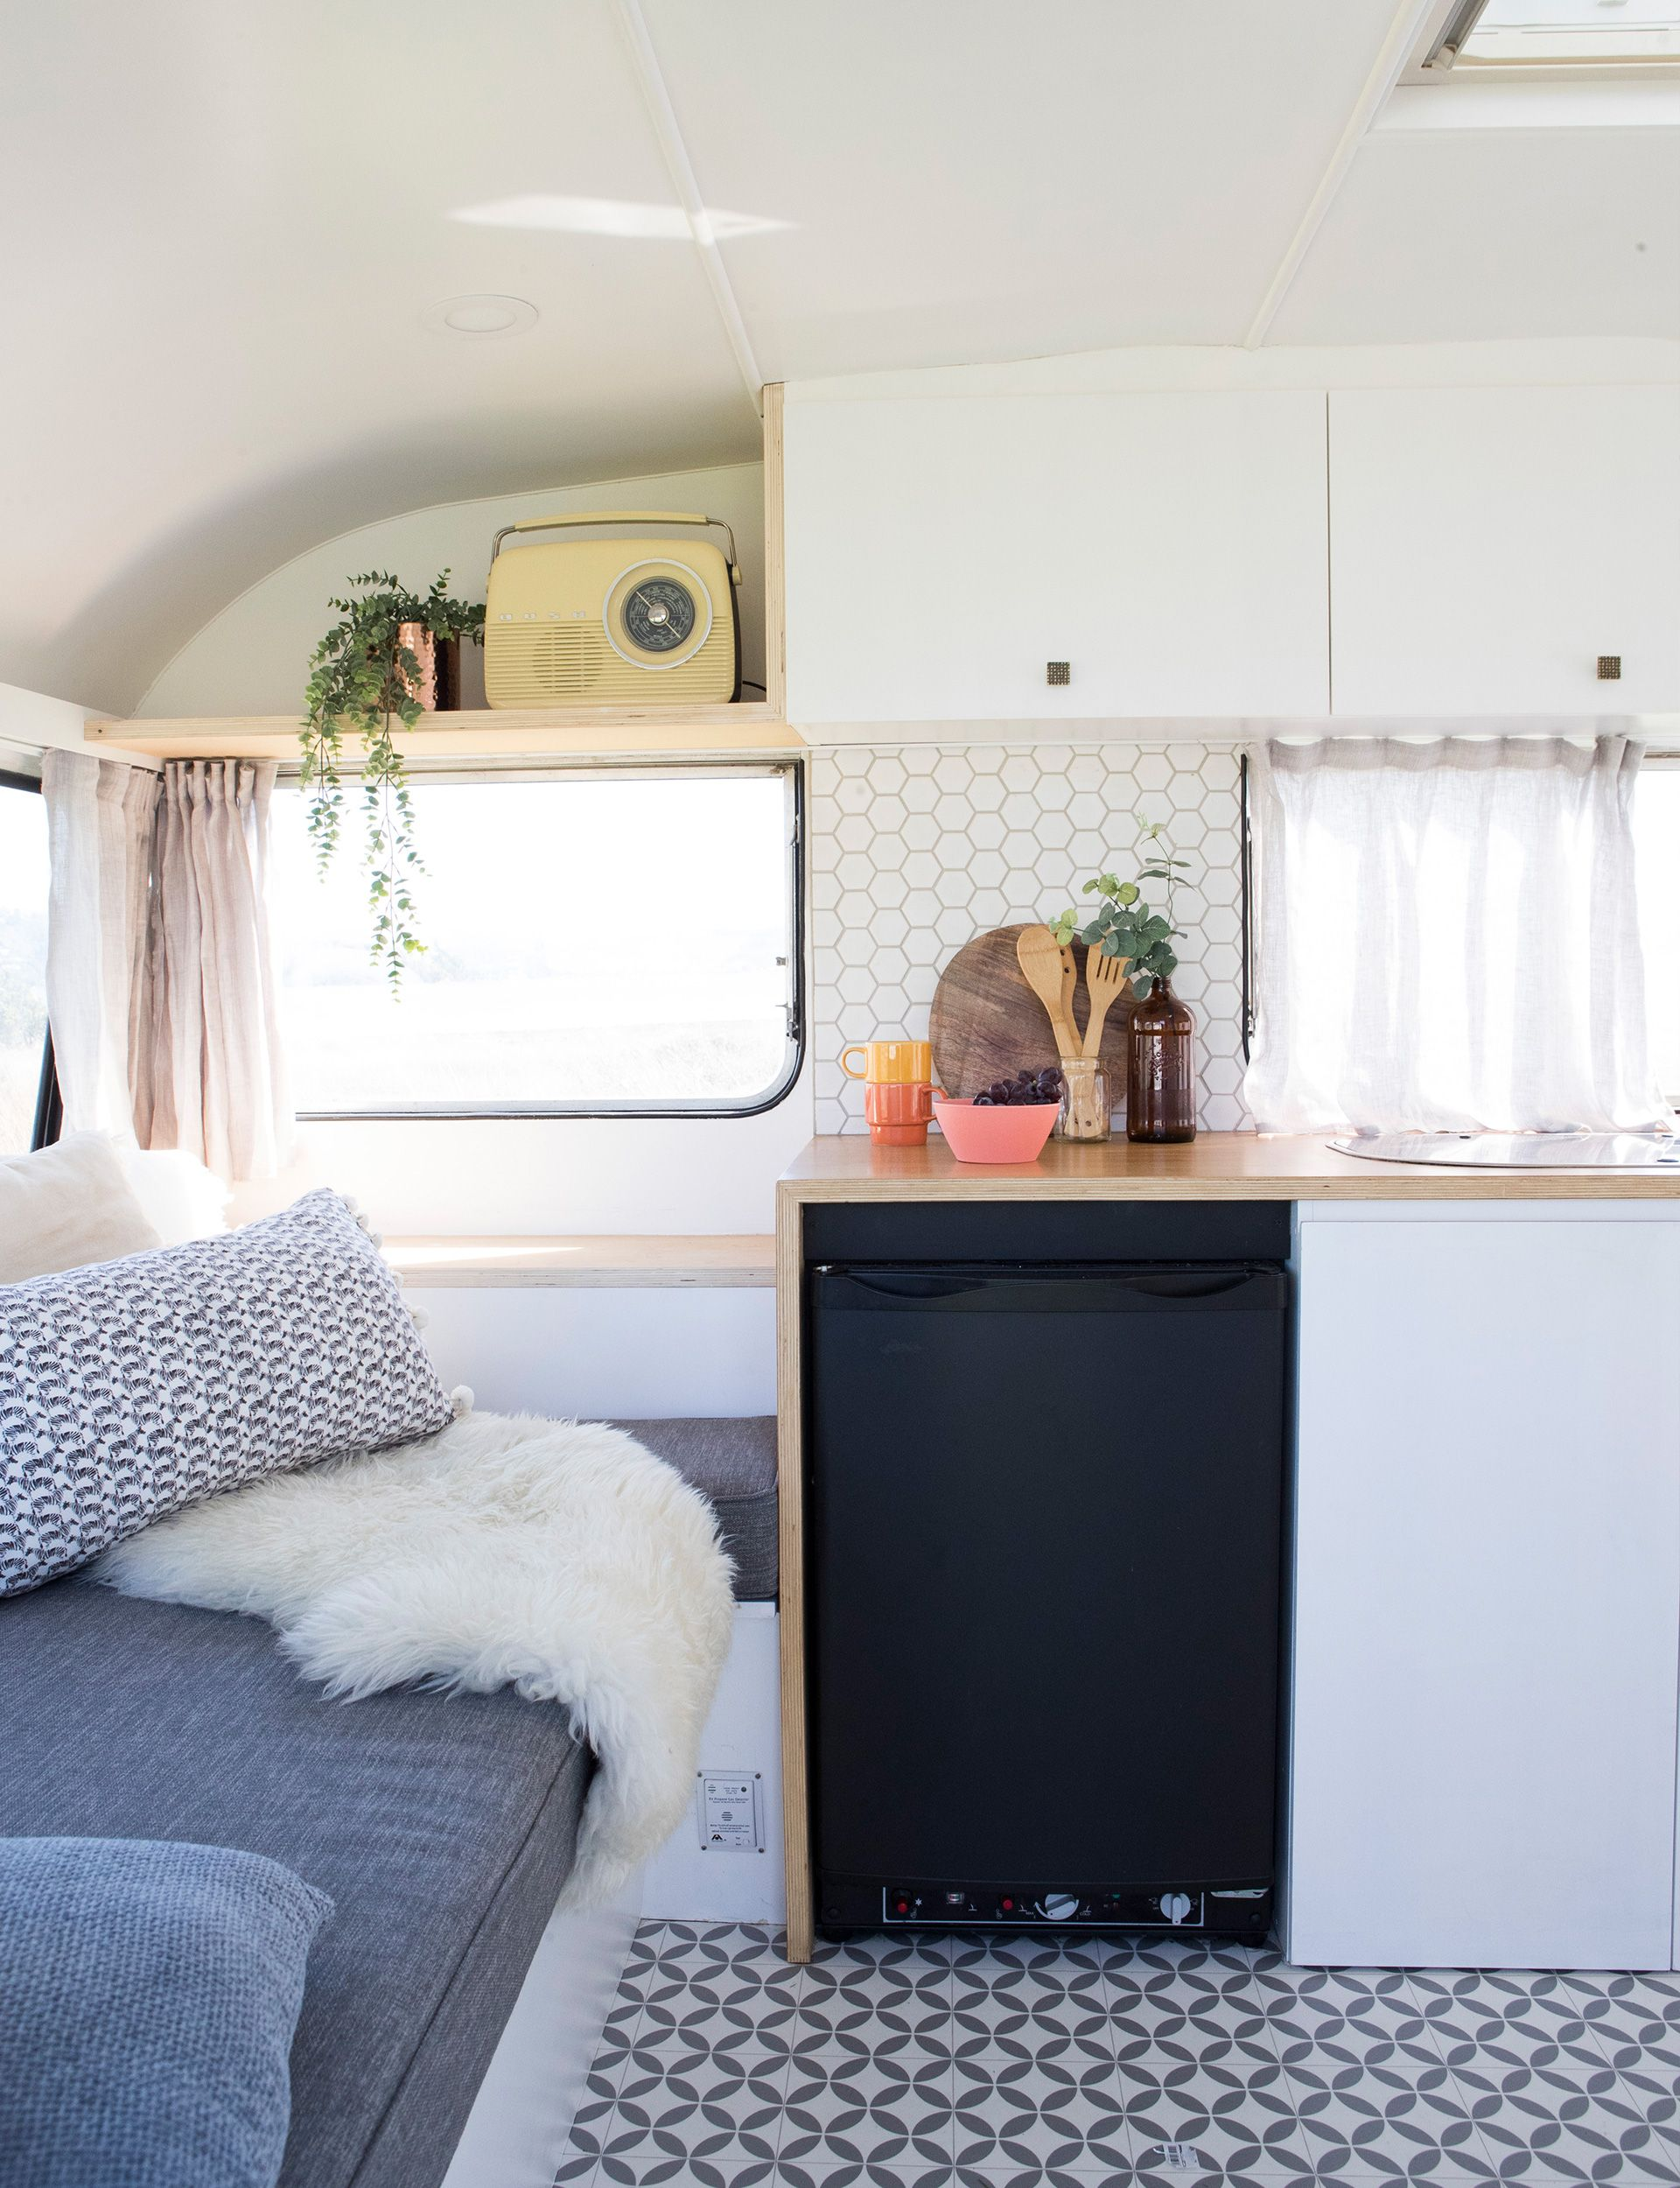 This sweet little caravan has been given the most stylish